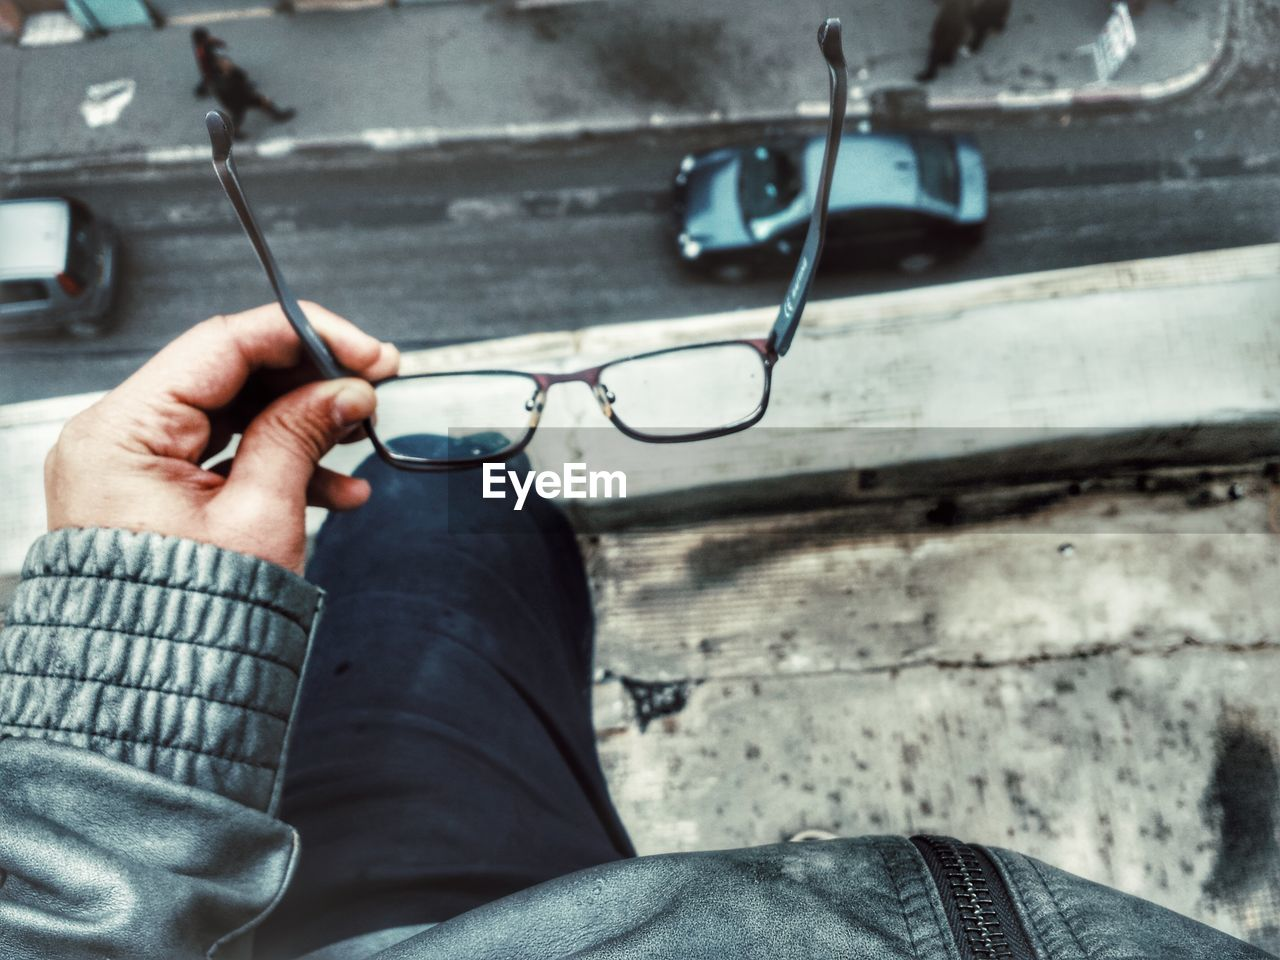 Cropped image of person holding eyeglasses while standing on building terrace